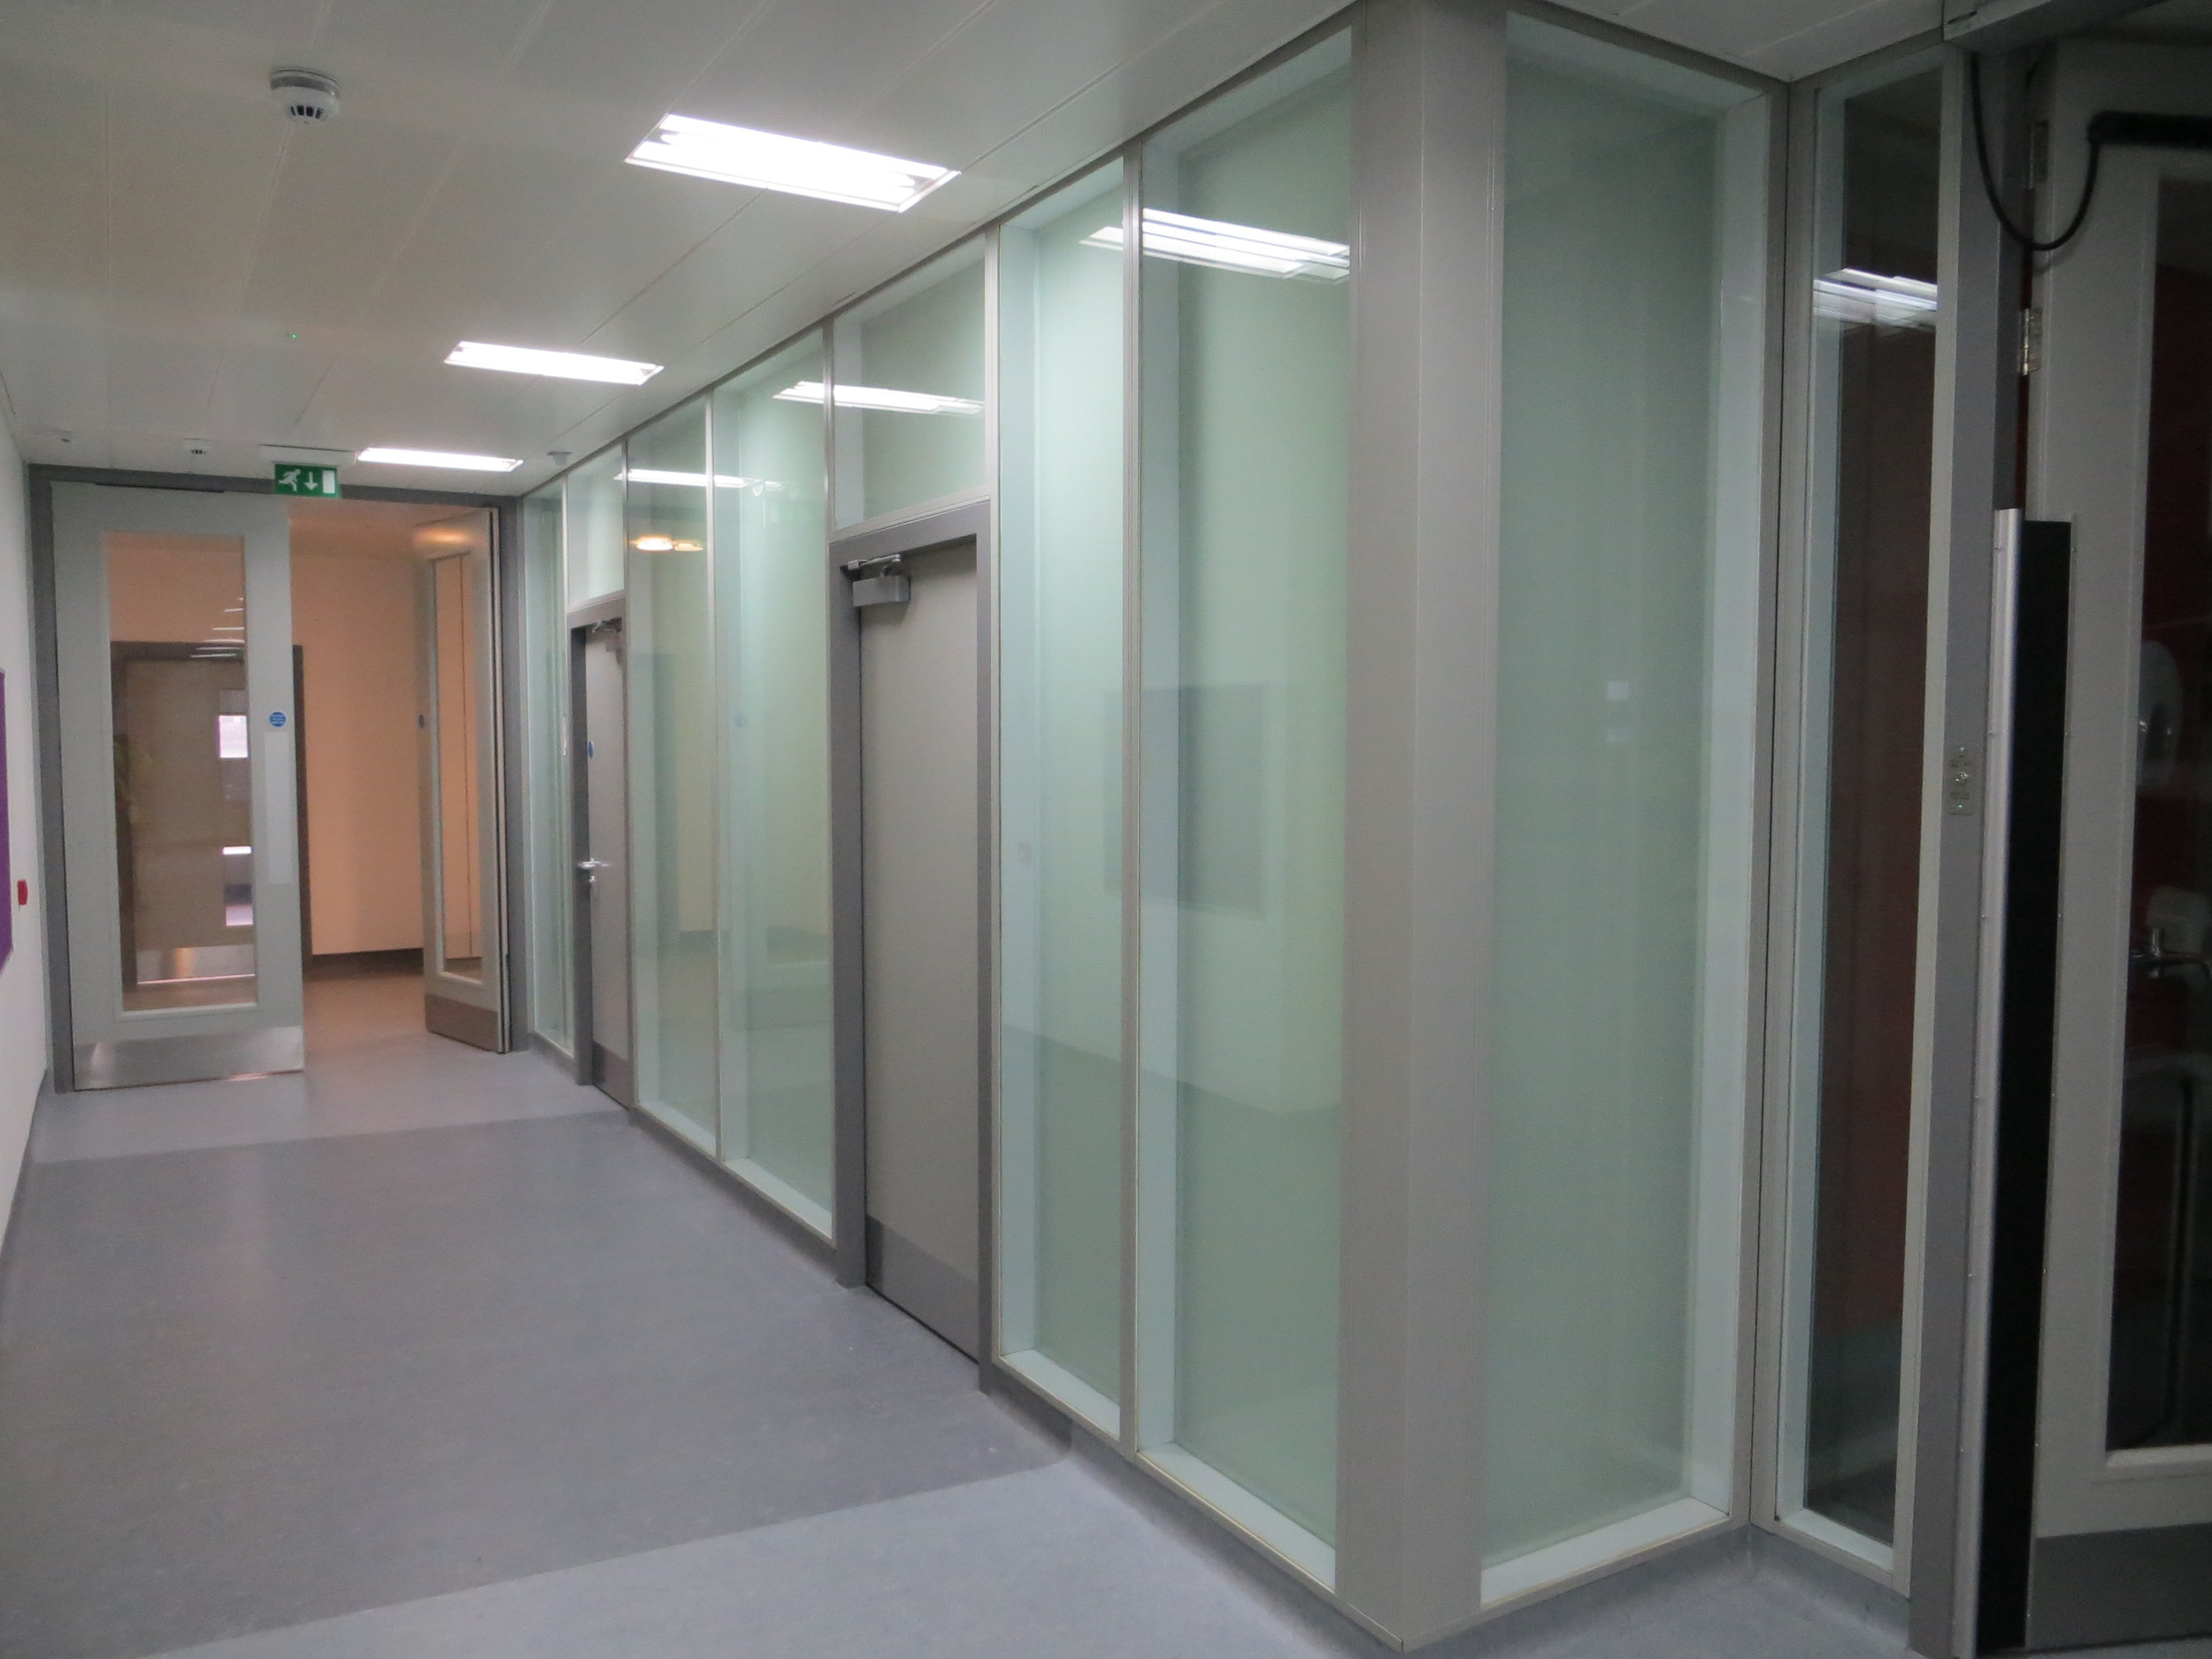 Glasgow Royal Infirmary - Glazed Partitions and Wall Lining